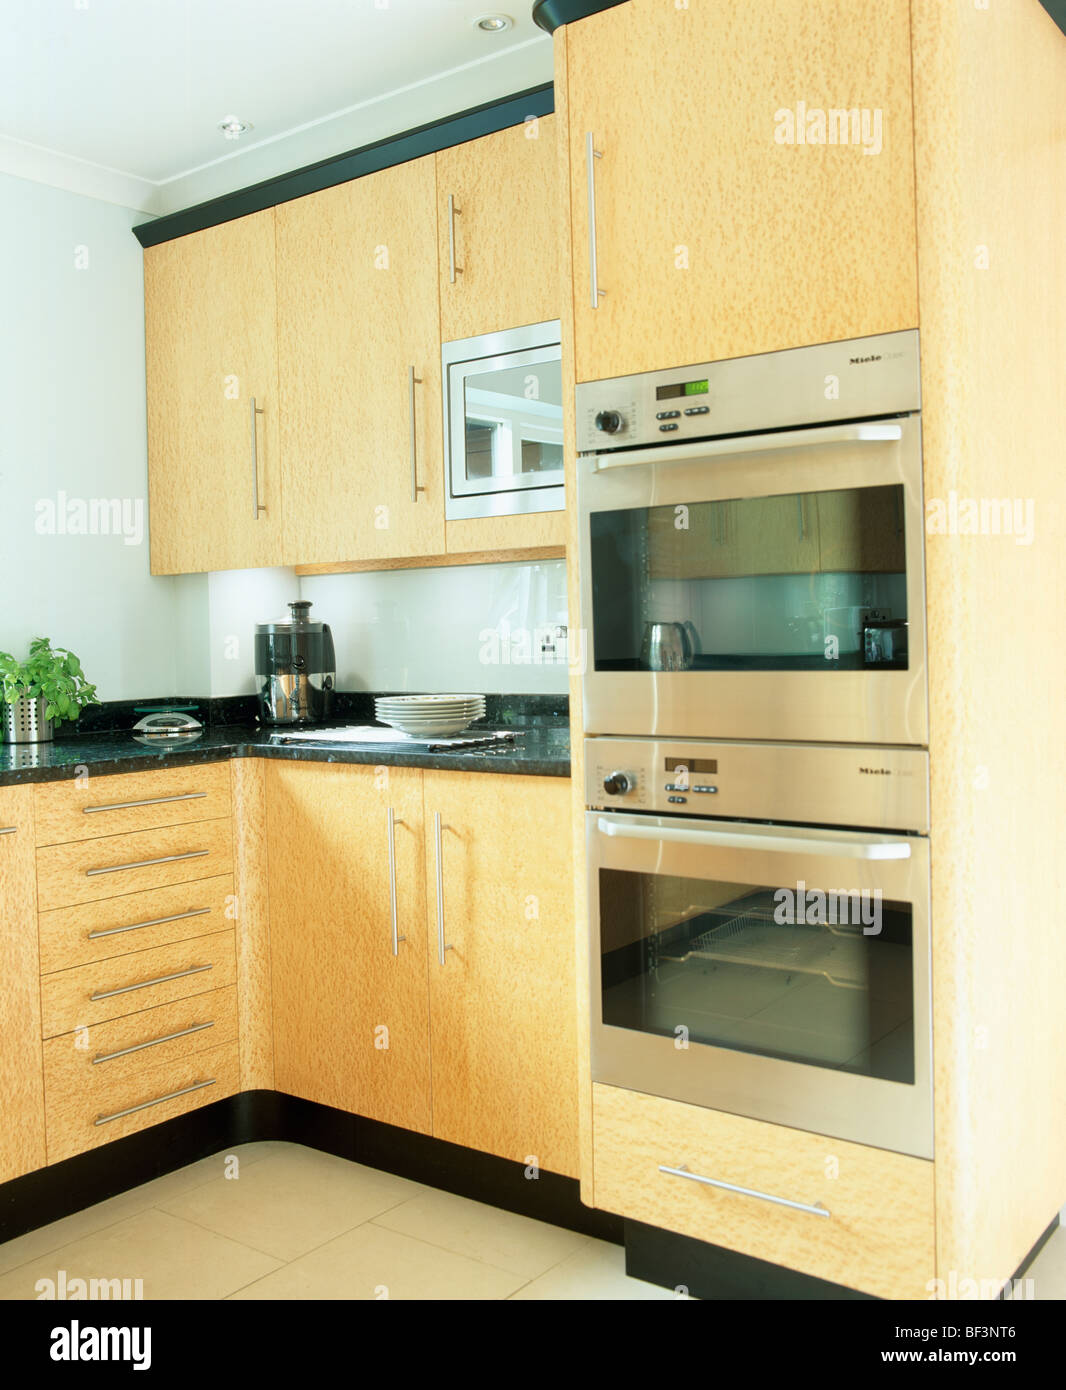 Eye Level Double Oven In Modern Kitchen With Pale Wood Units